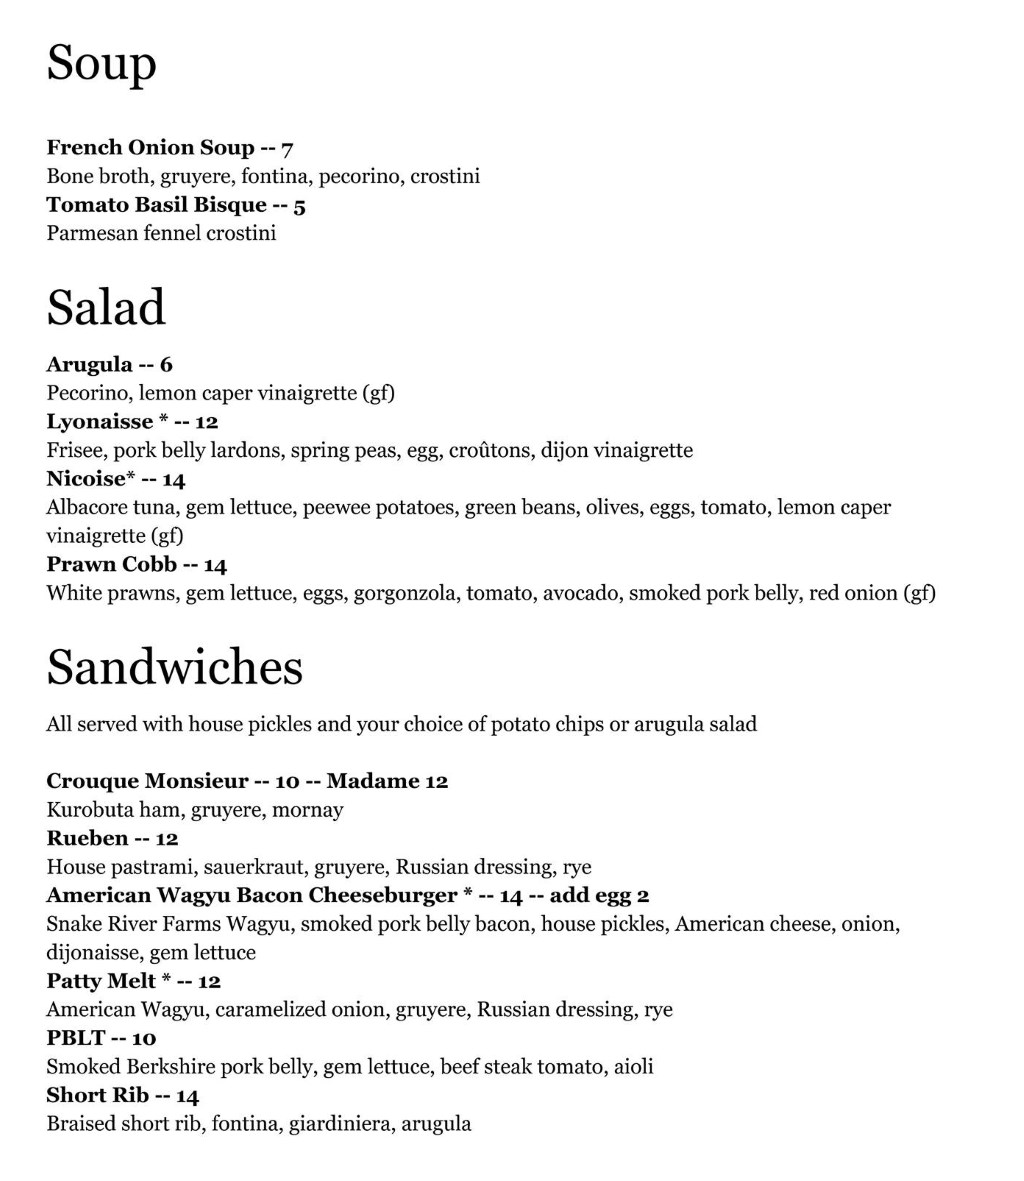 White Horse Spirits and Kitchen menu - soup, salad, sandwiches